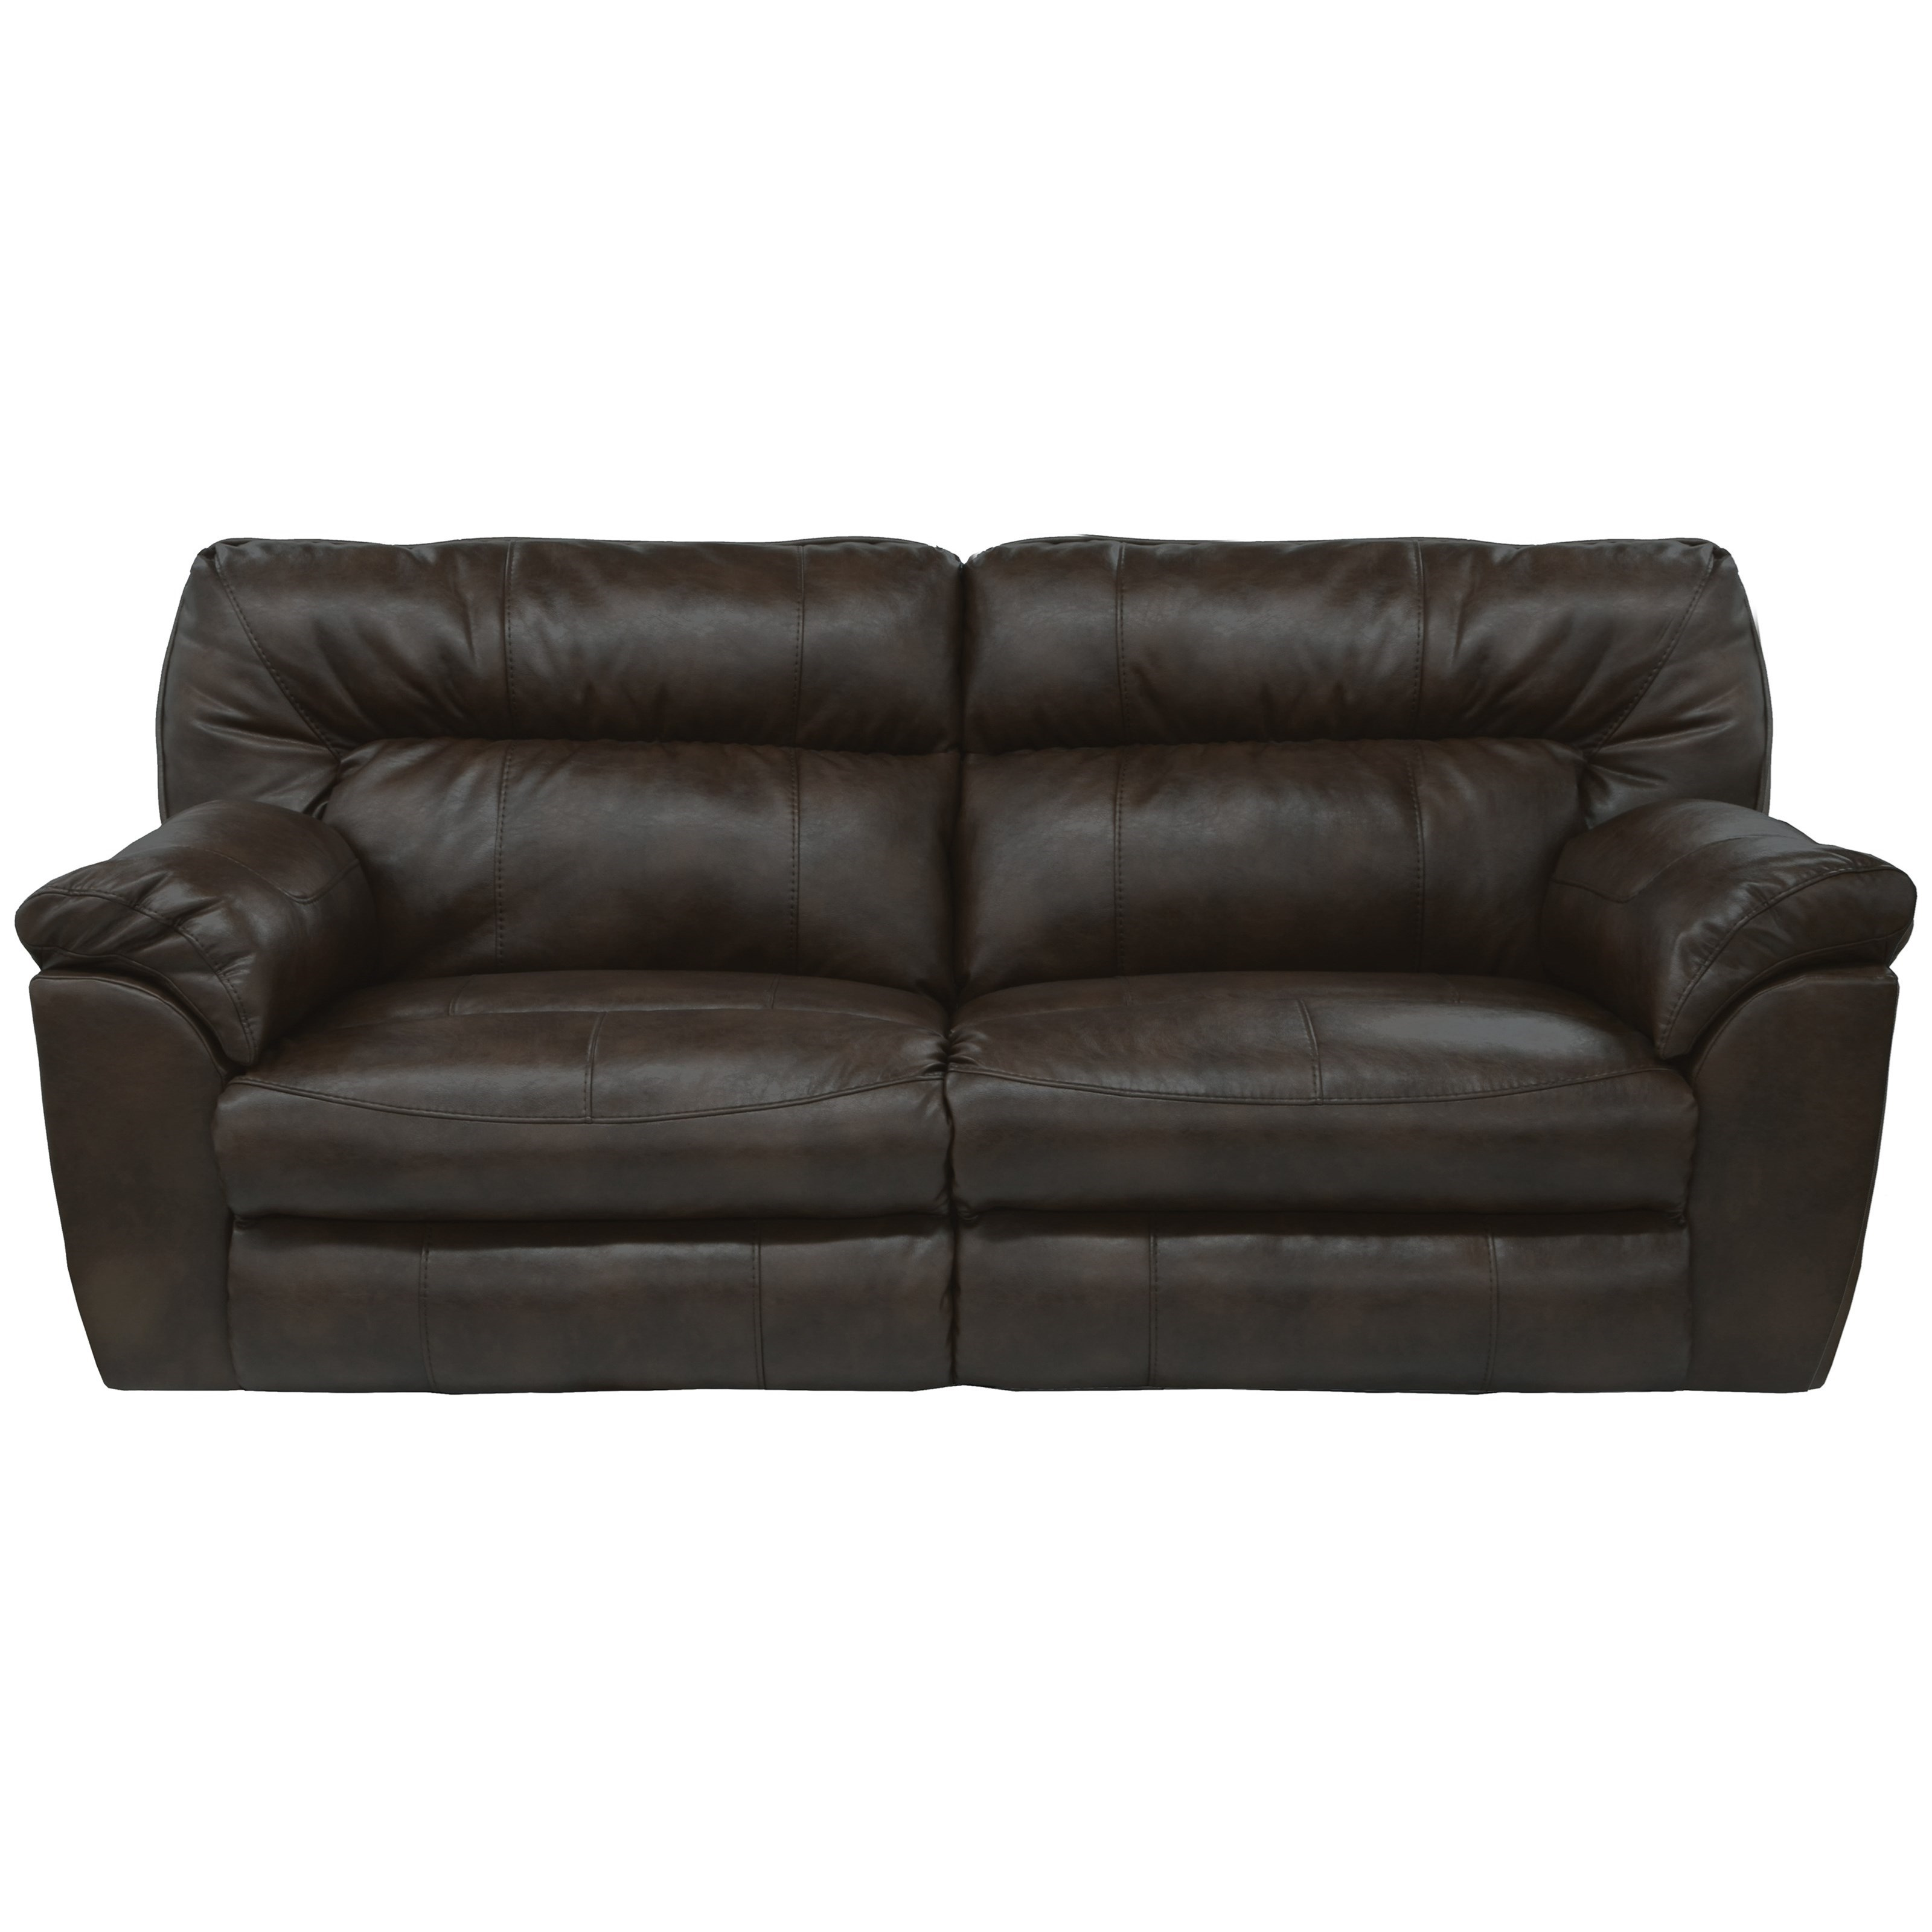 Nolan 304 Extra Wide Power Reclining Sofa by Catnapper at Northeast Factory Direct